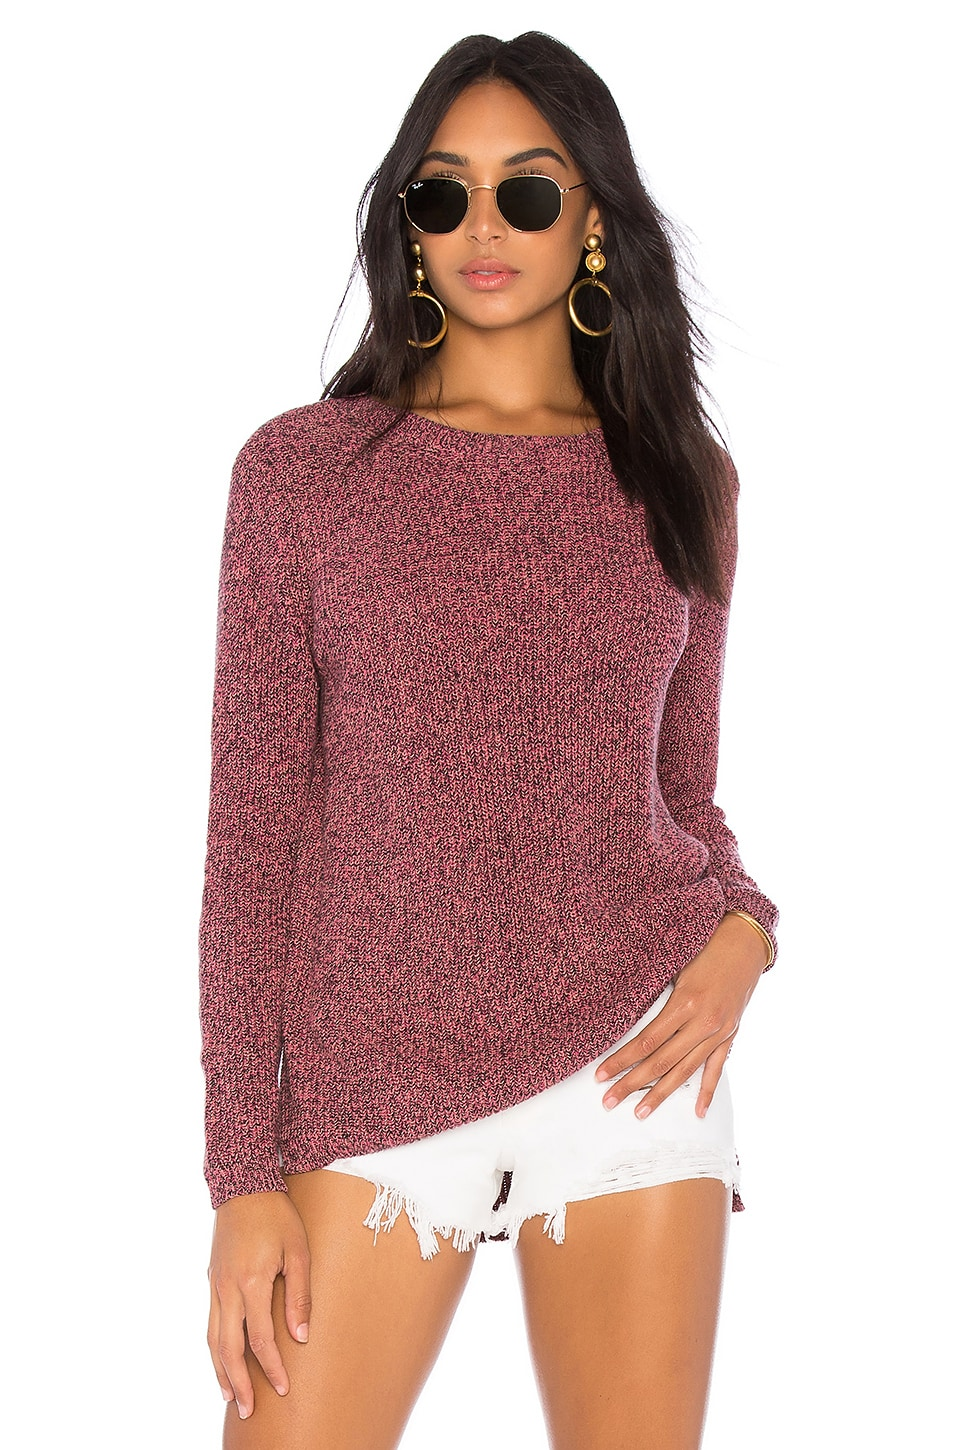 525 AMERICA EMMA SWEATER